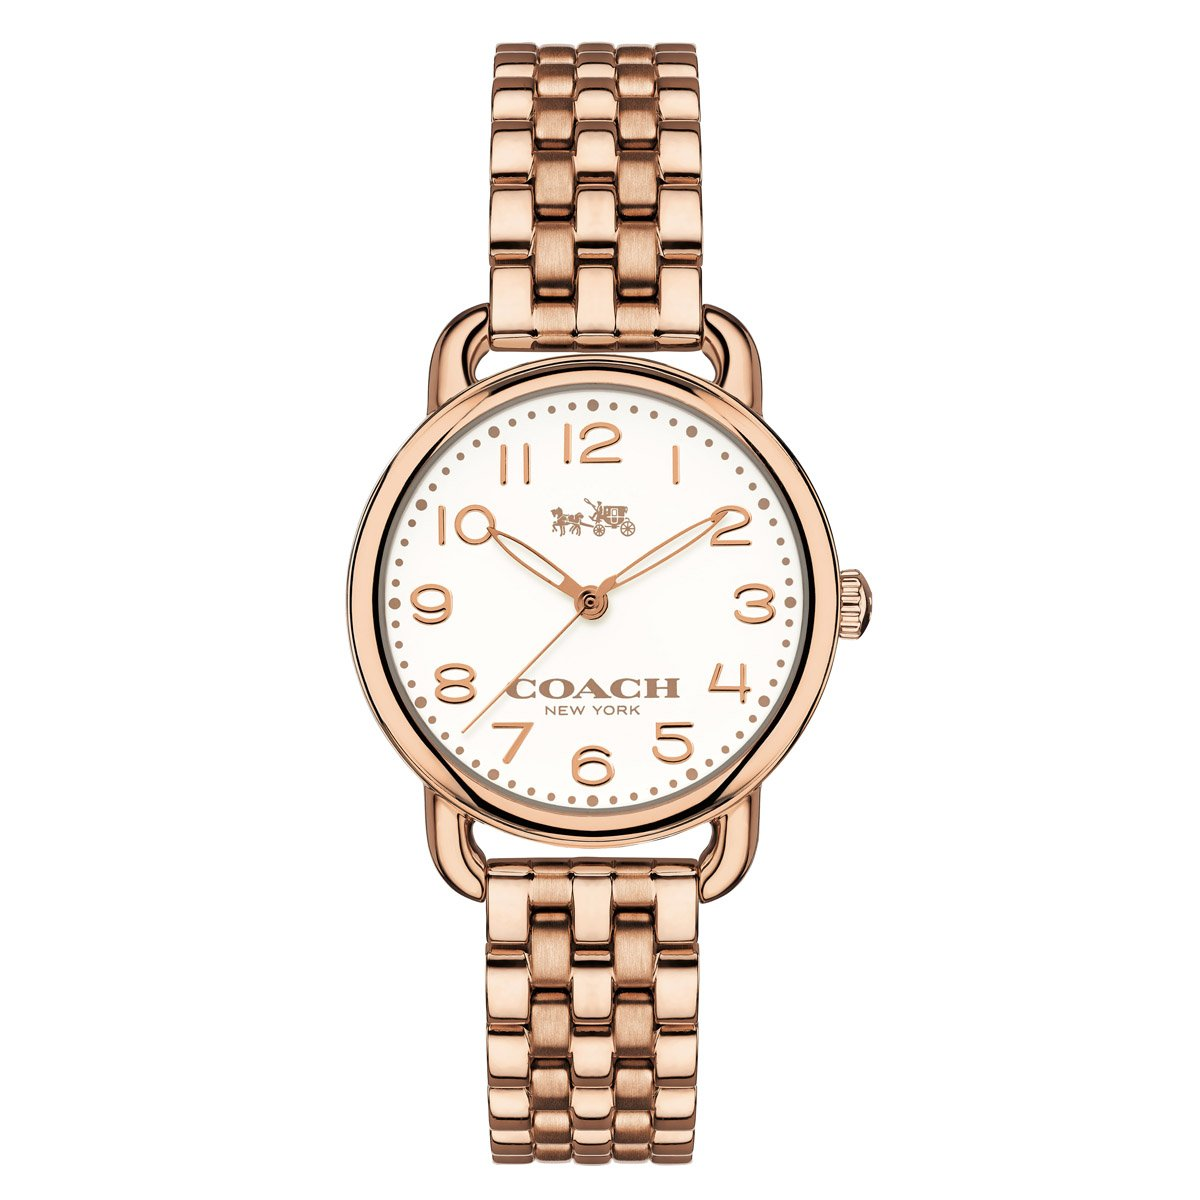 Coach Ladies Delancey Analog Business Quartz Watch (Imported) 14502242 by Coach